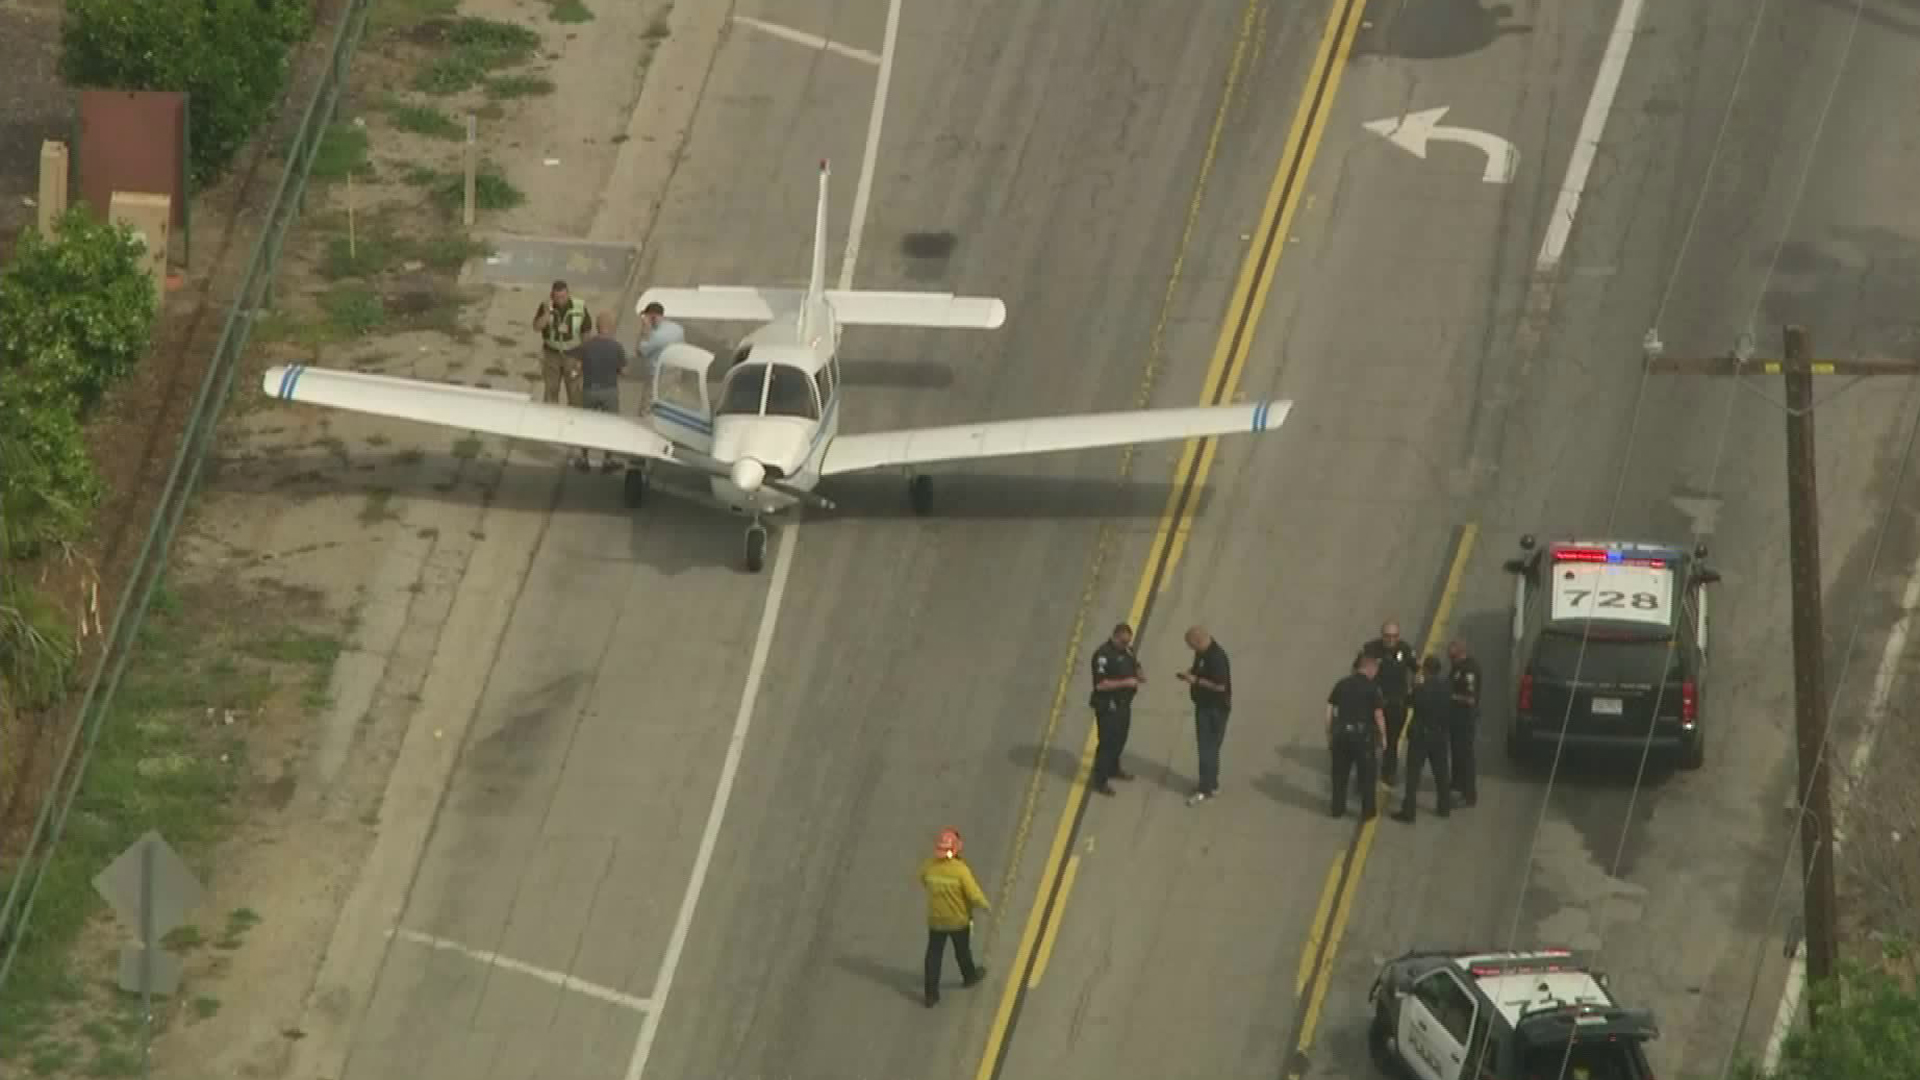 A small plane landed on a street near the Long Beach Airport on April 1, 2019. (Credit: KTLA)